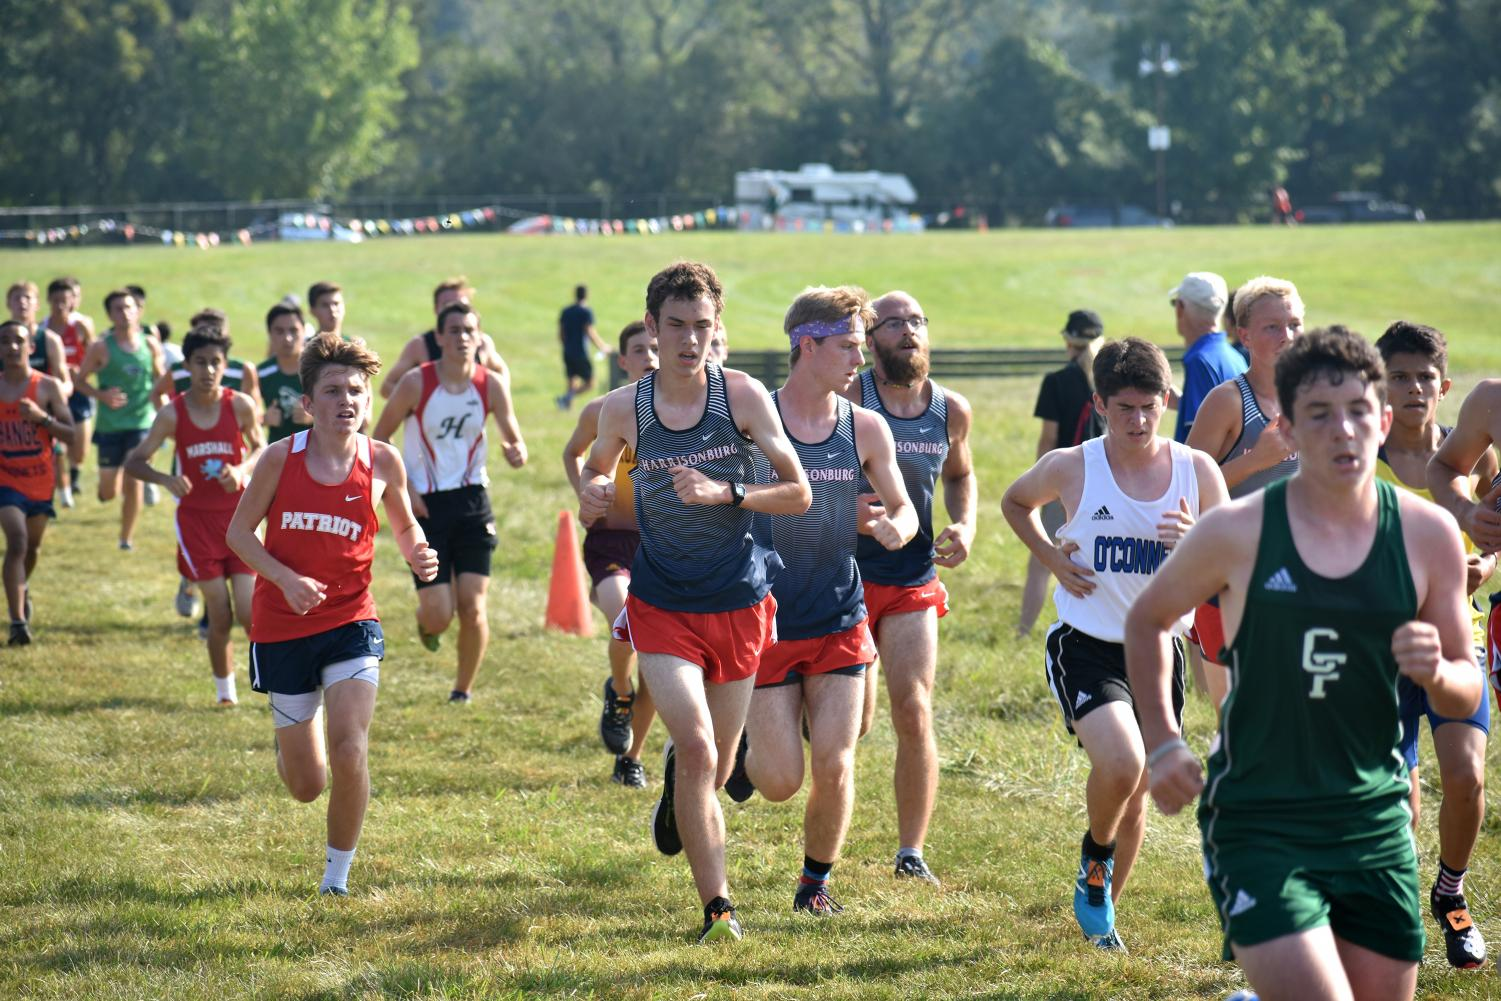 Seniors Alex Neufeld, Michael Hulleman and Elias Wickline run as a pack during the first mile.